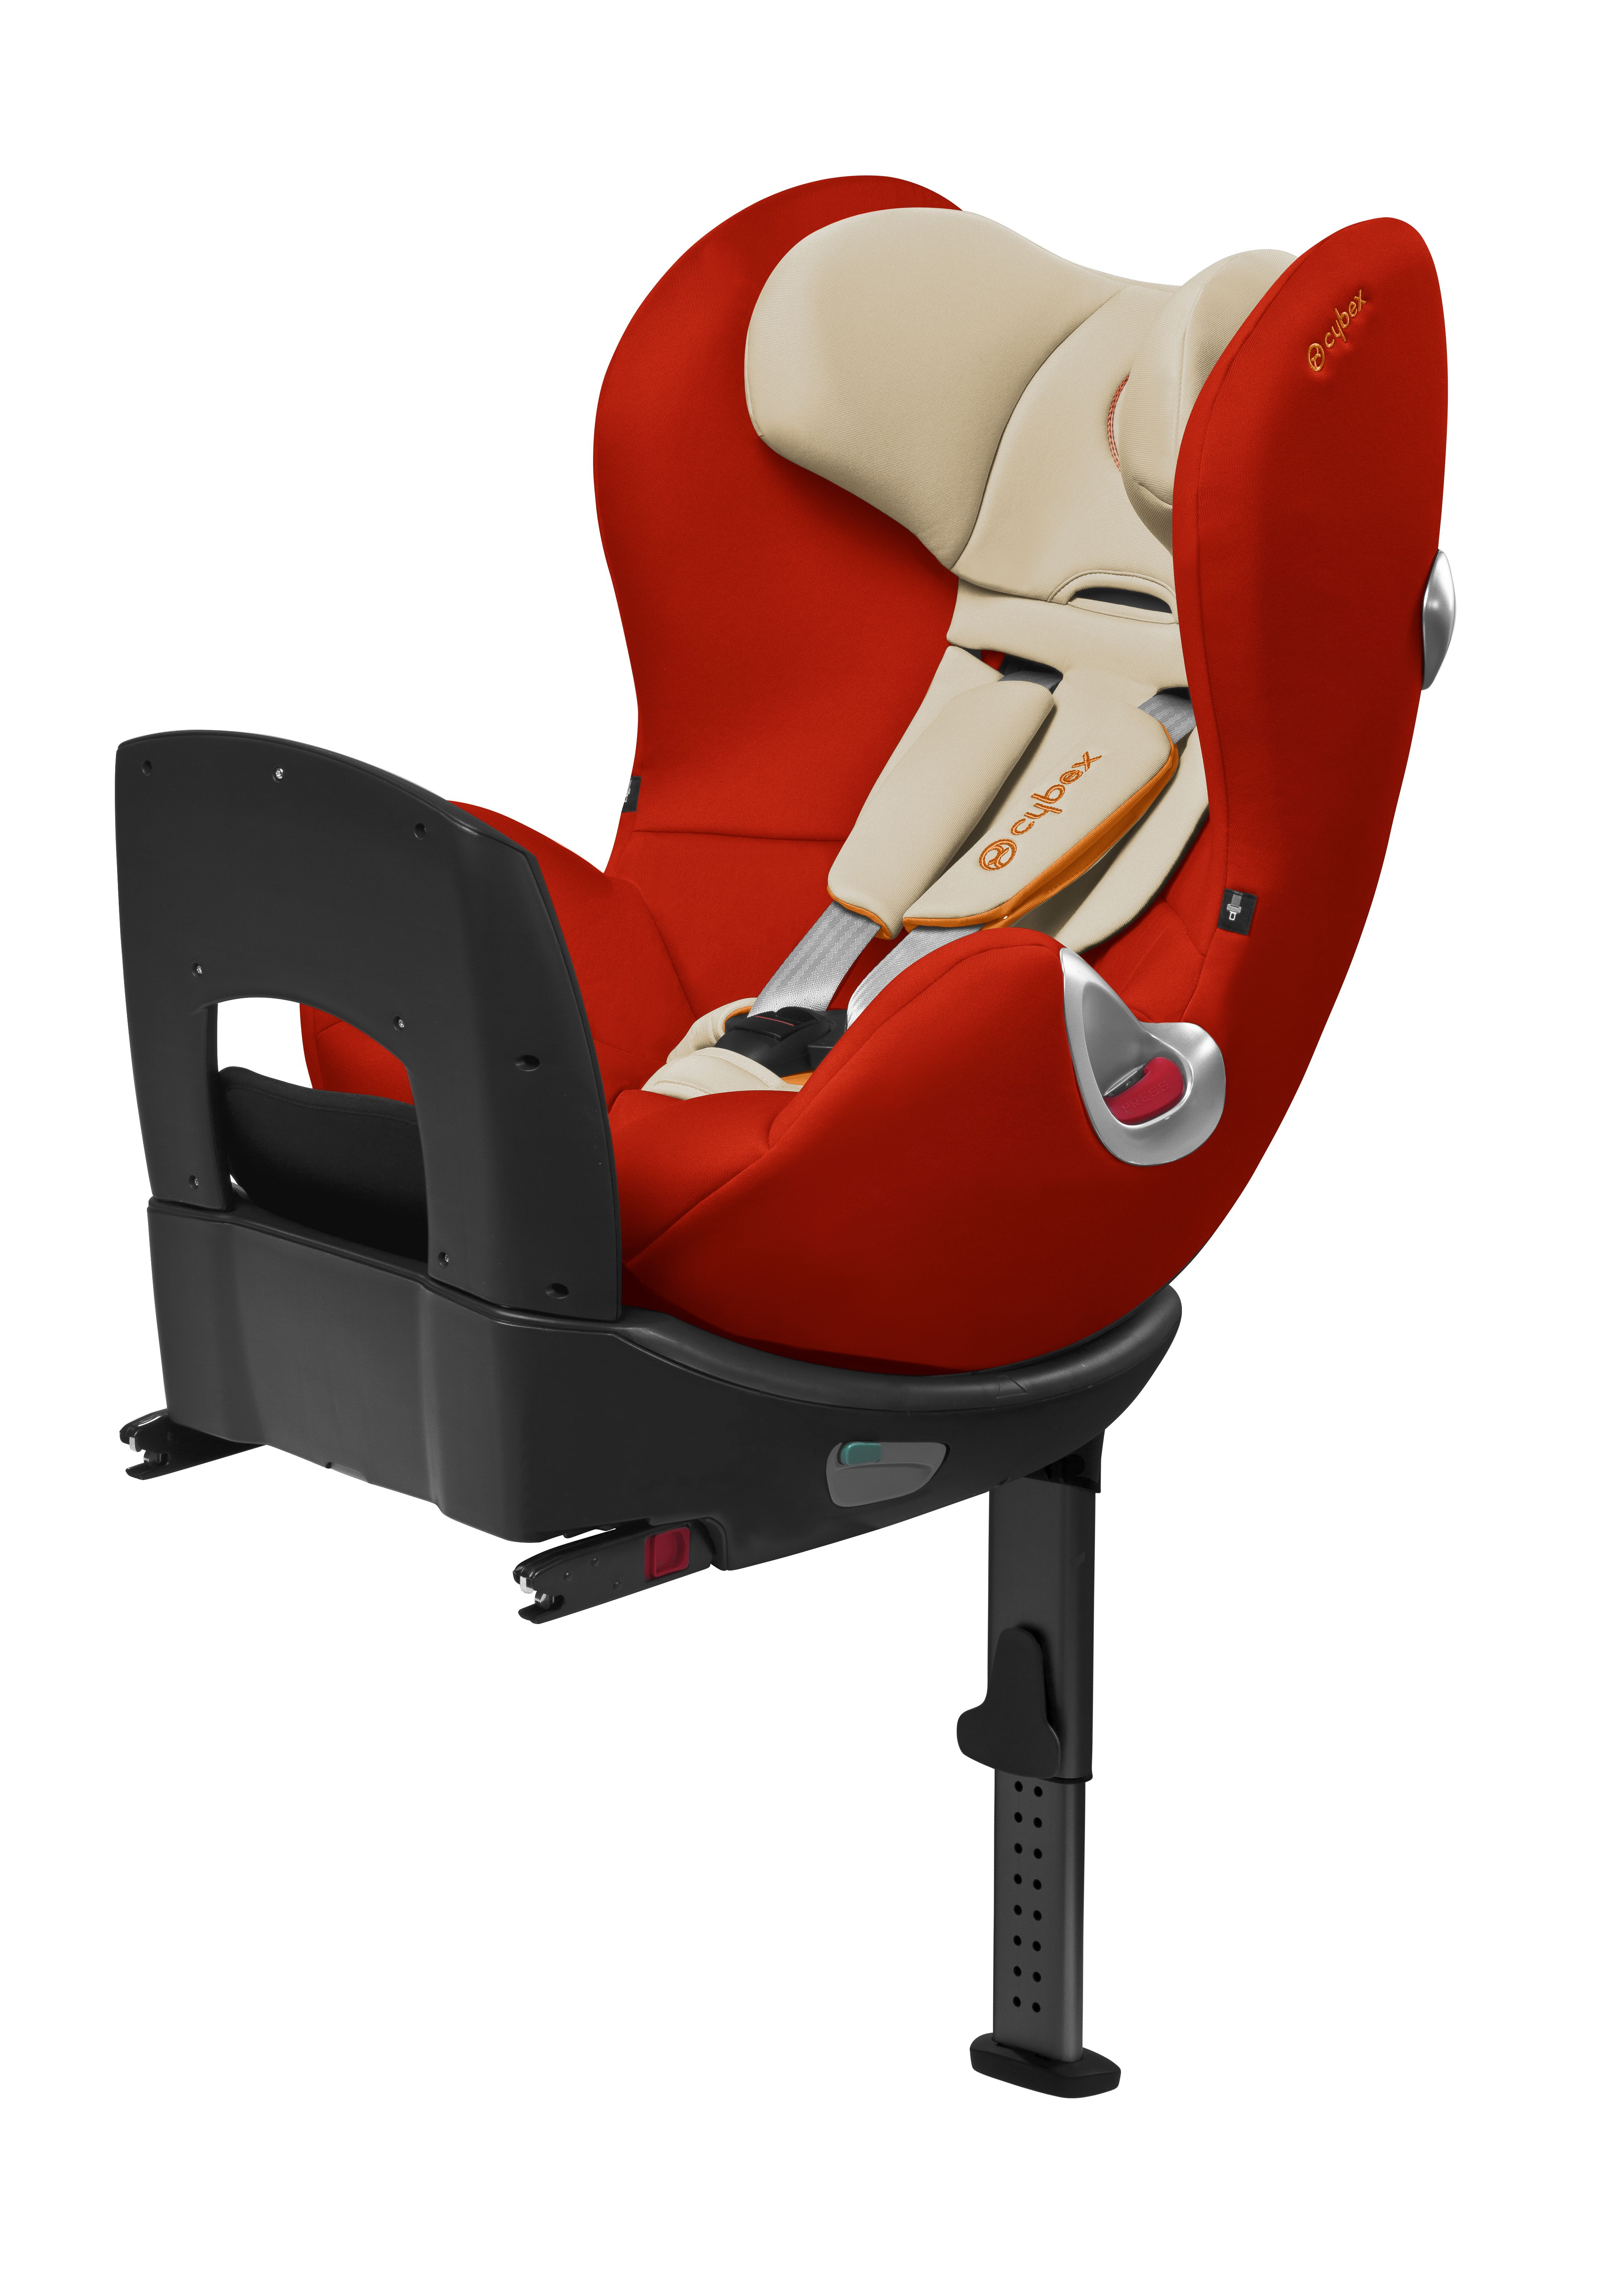 The Pioneering Rear Facing Child Car Seat Cybex Sirona Gr 0 1 In Autumn Gold Baby Car Seats Child Car Seat Car Seats